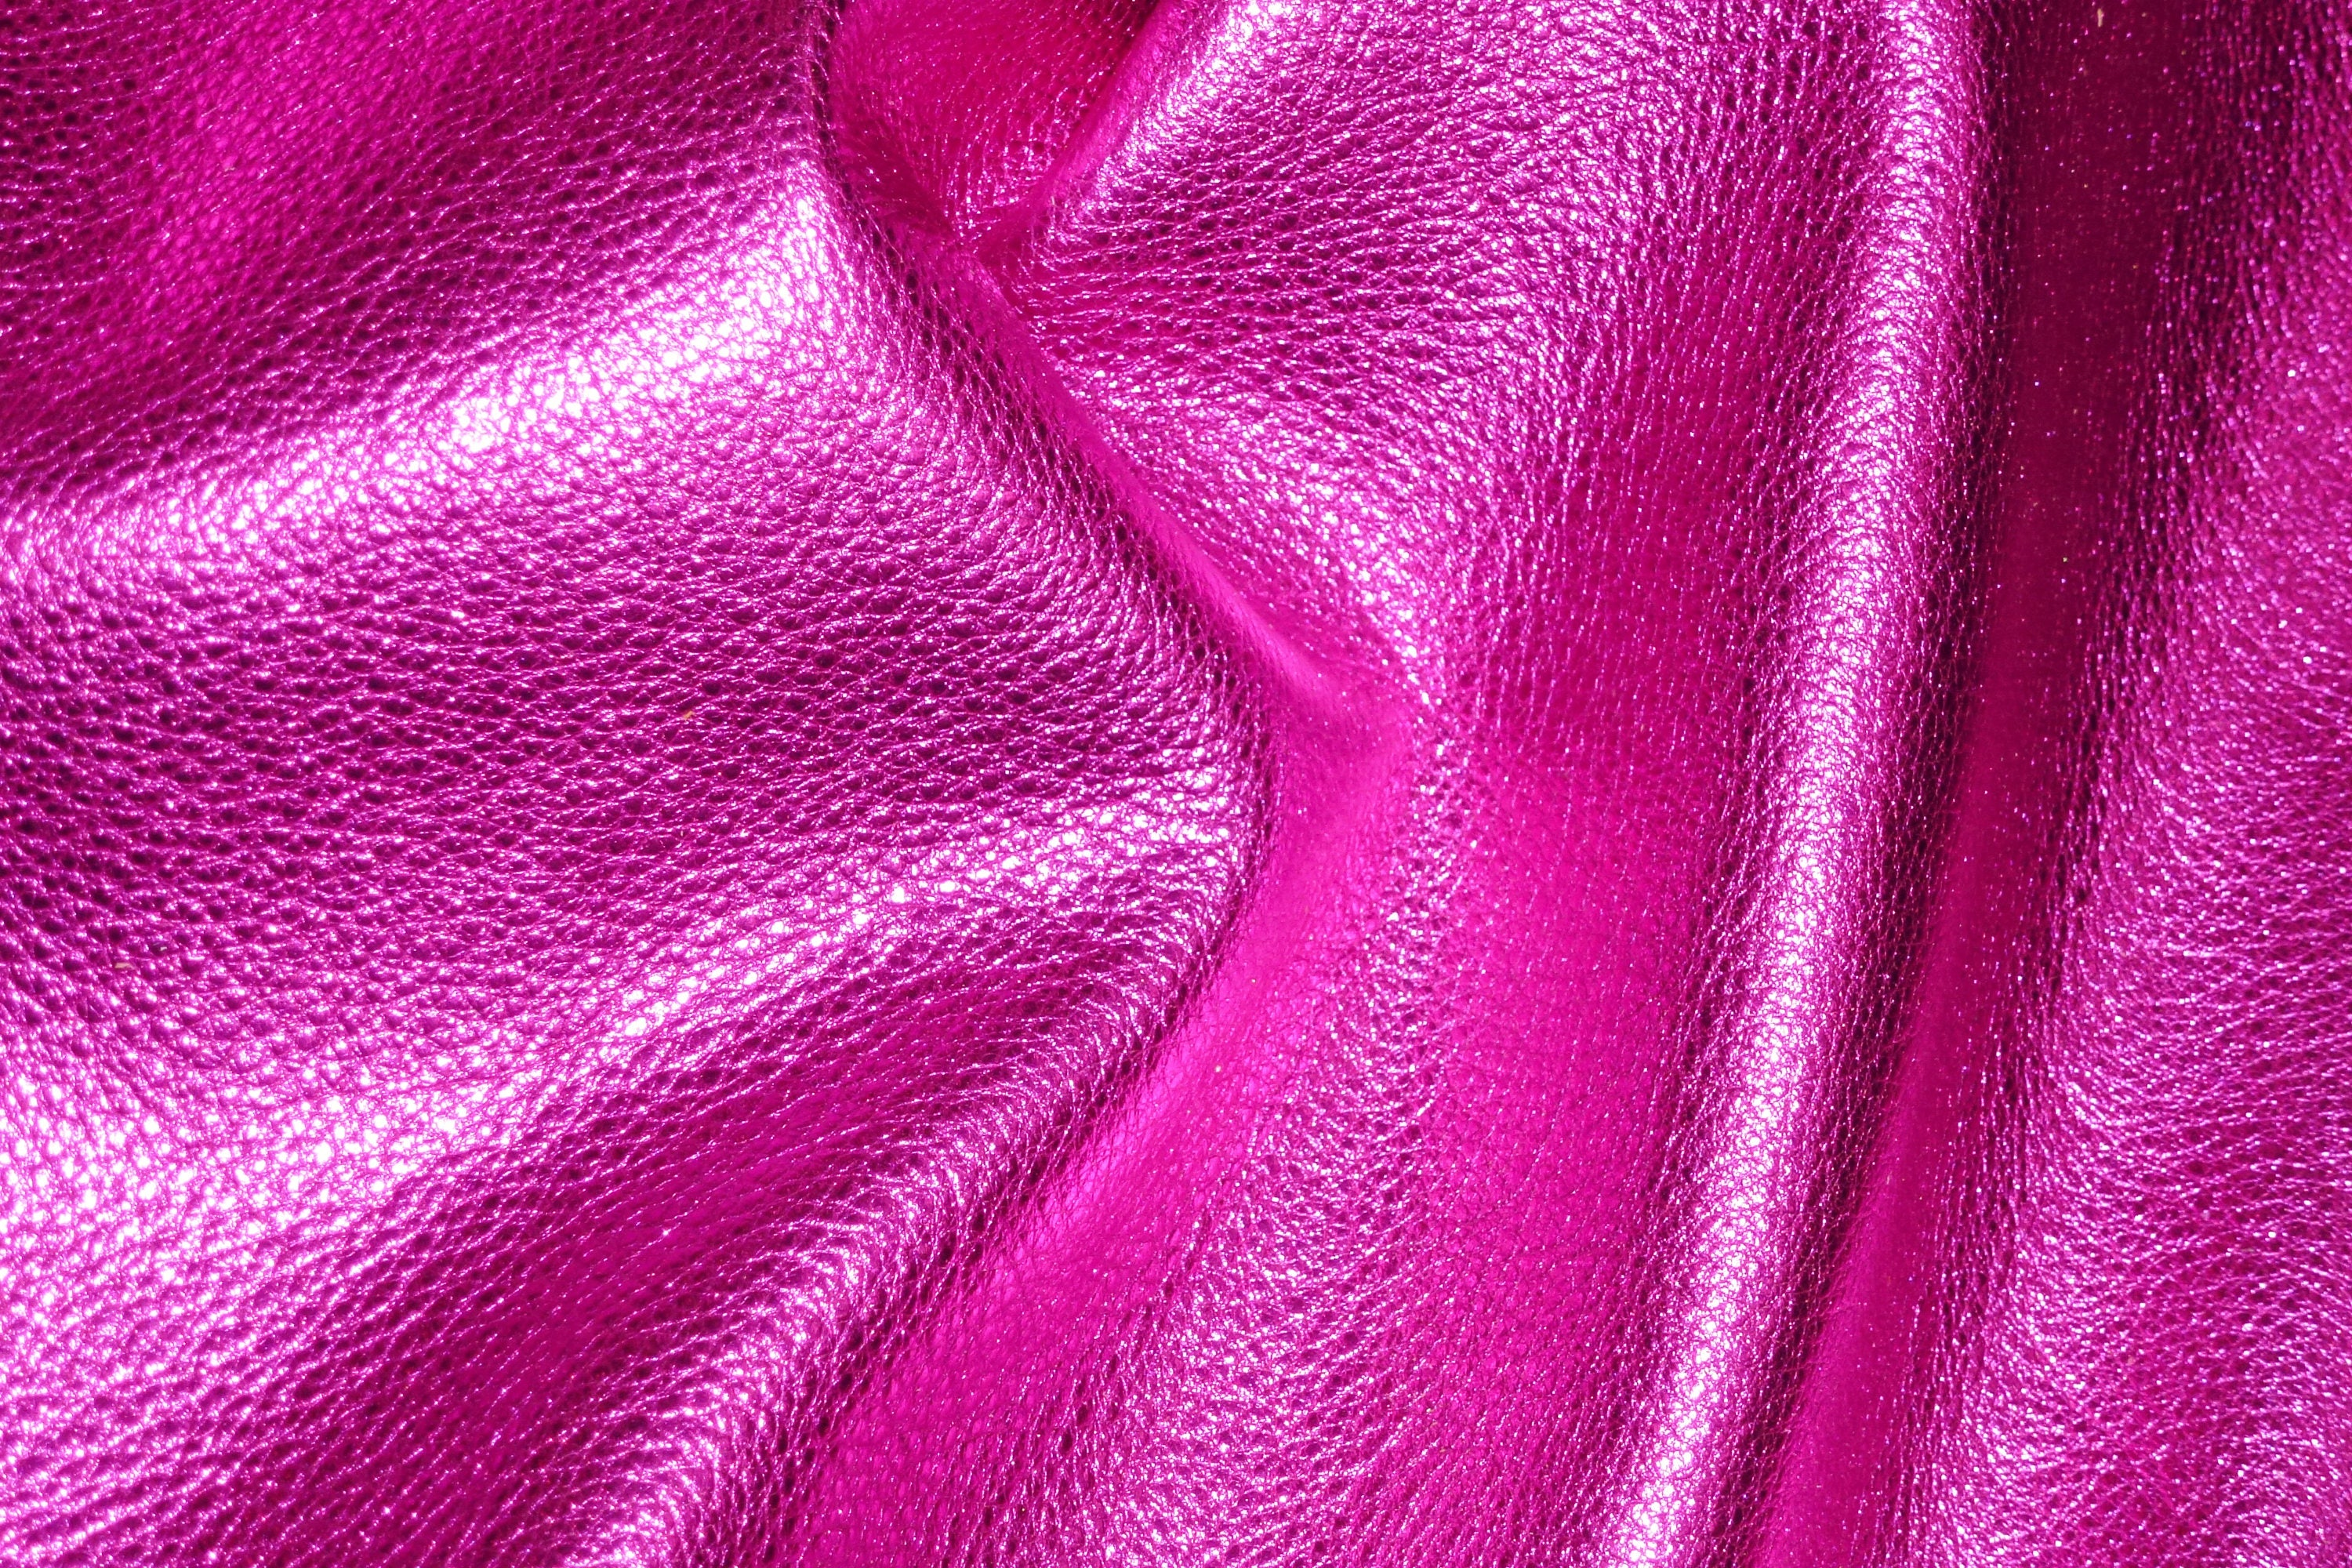 Metallic Leather 12x12 Dazzle CRIMSON Red FROST Silver Cowhide 2.5 oz  1 mm PeggySueAlso\u2122 E8300-12 hides too